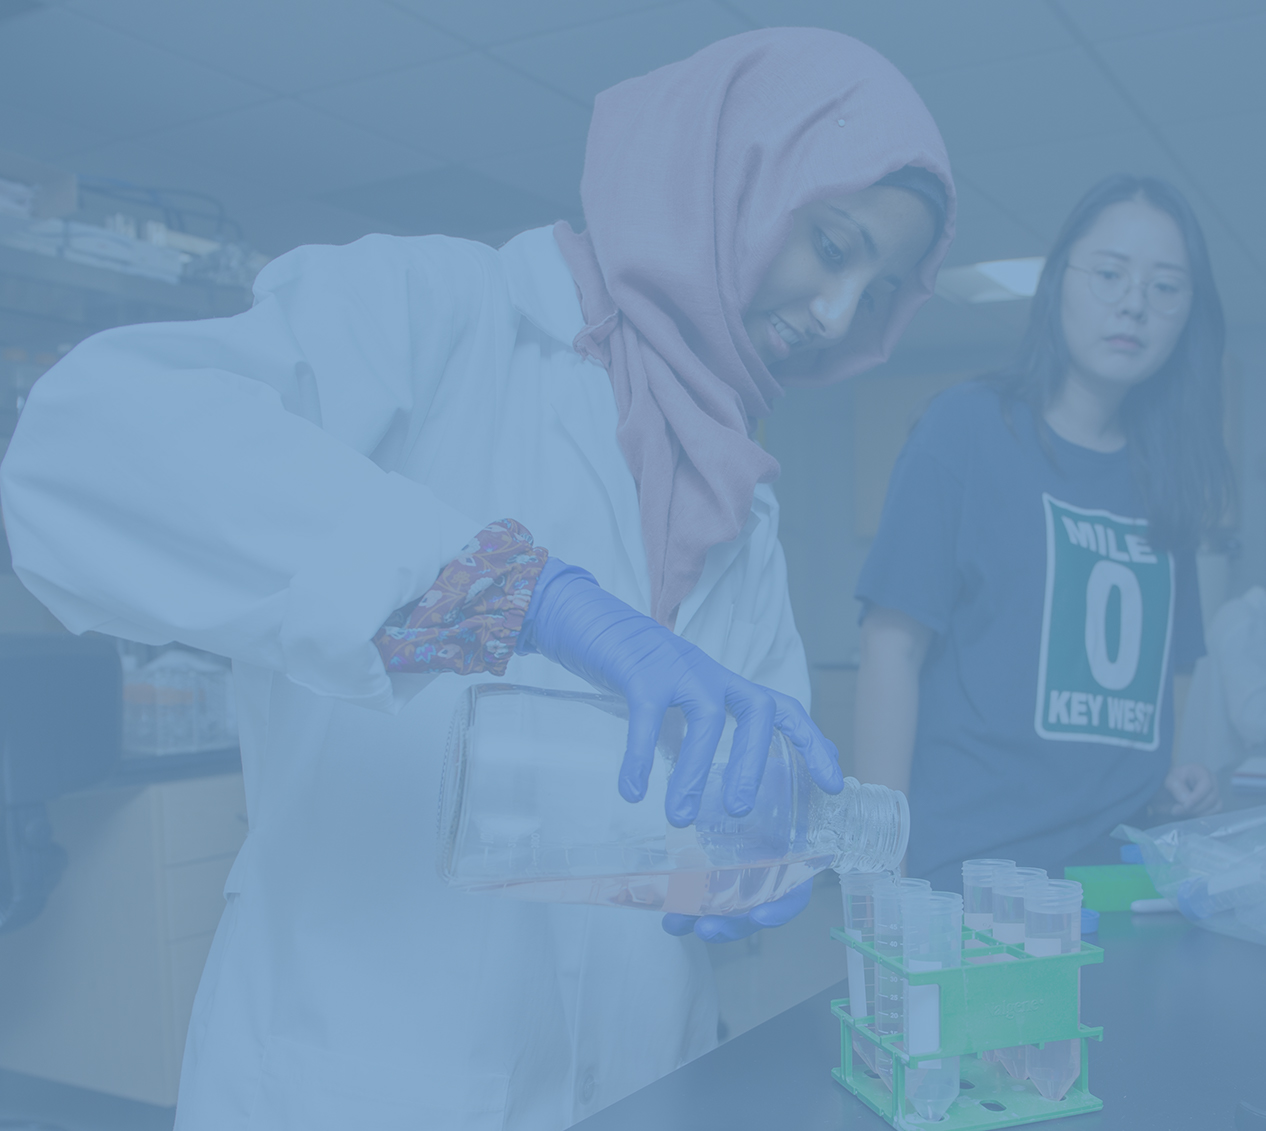 CALS student wearing a white lab coat, gloves and a headscarf pours a solution into graduated cylinders while her teacher observes.